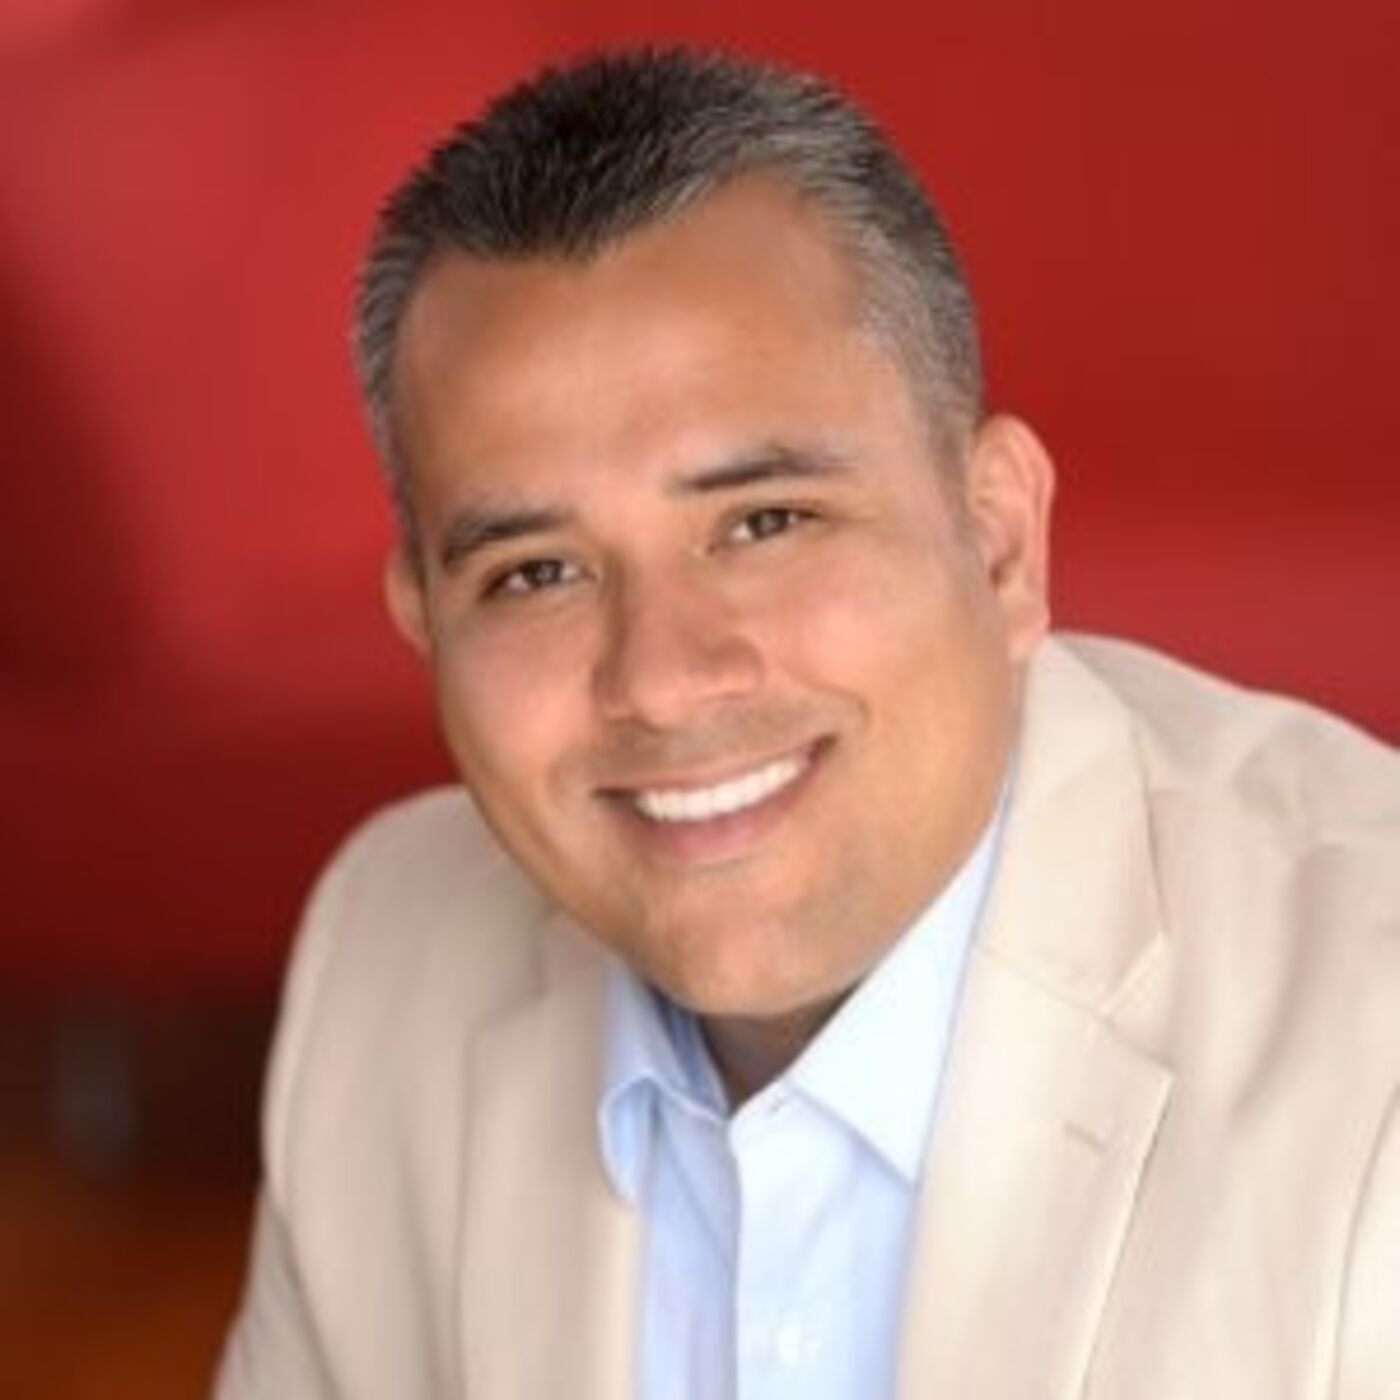 How to Get More Referrals w/ Mario Martinez Jr.